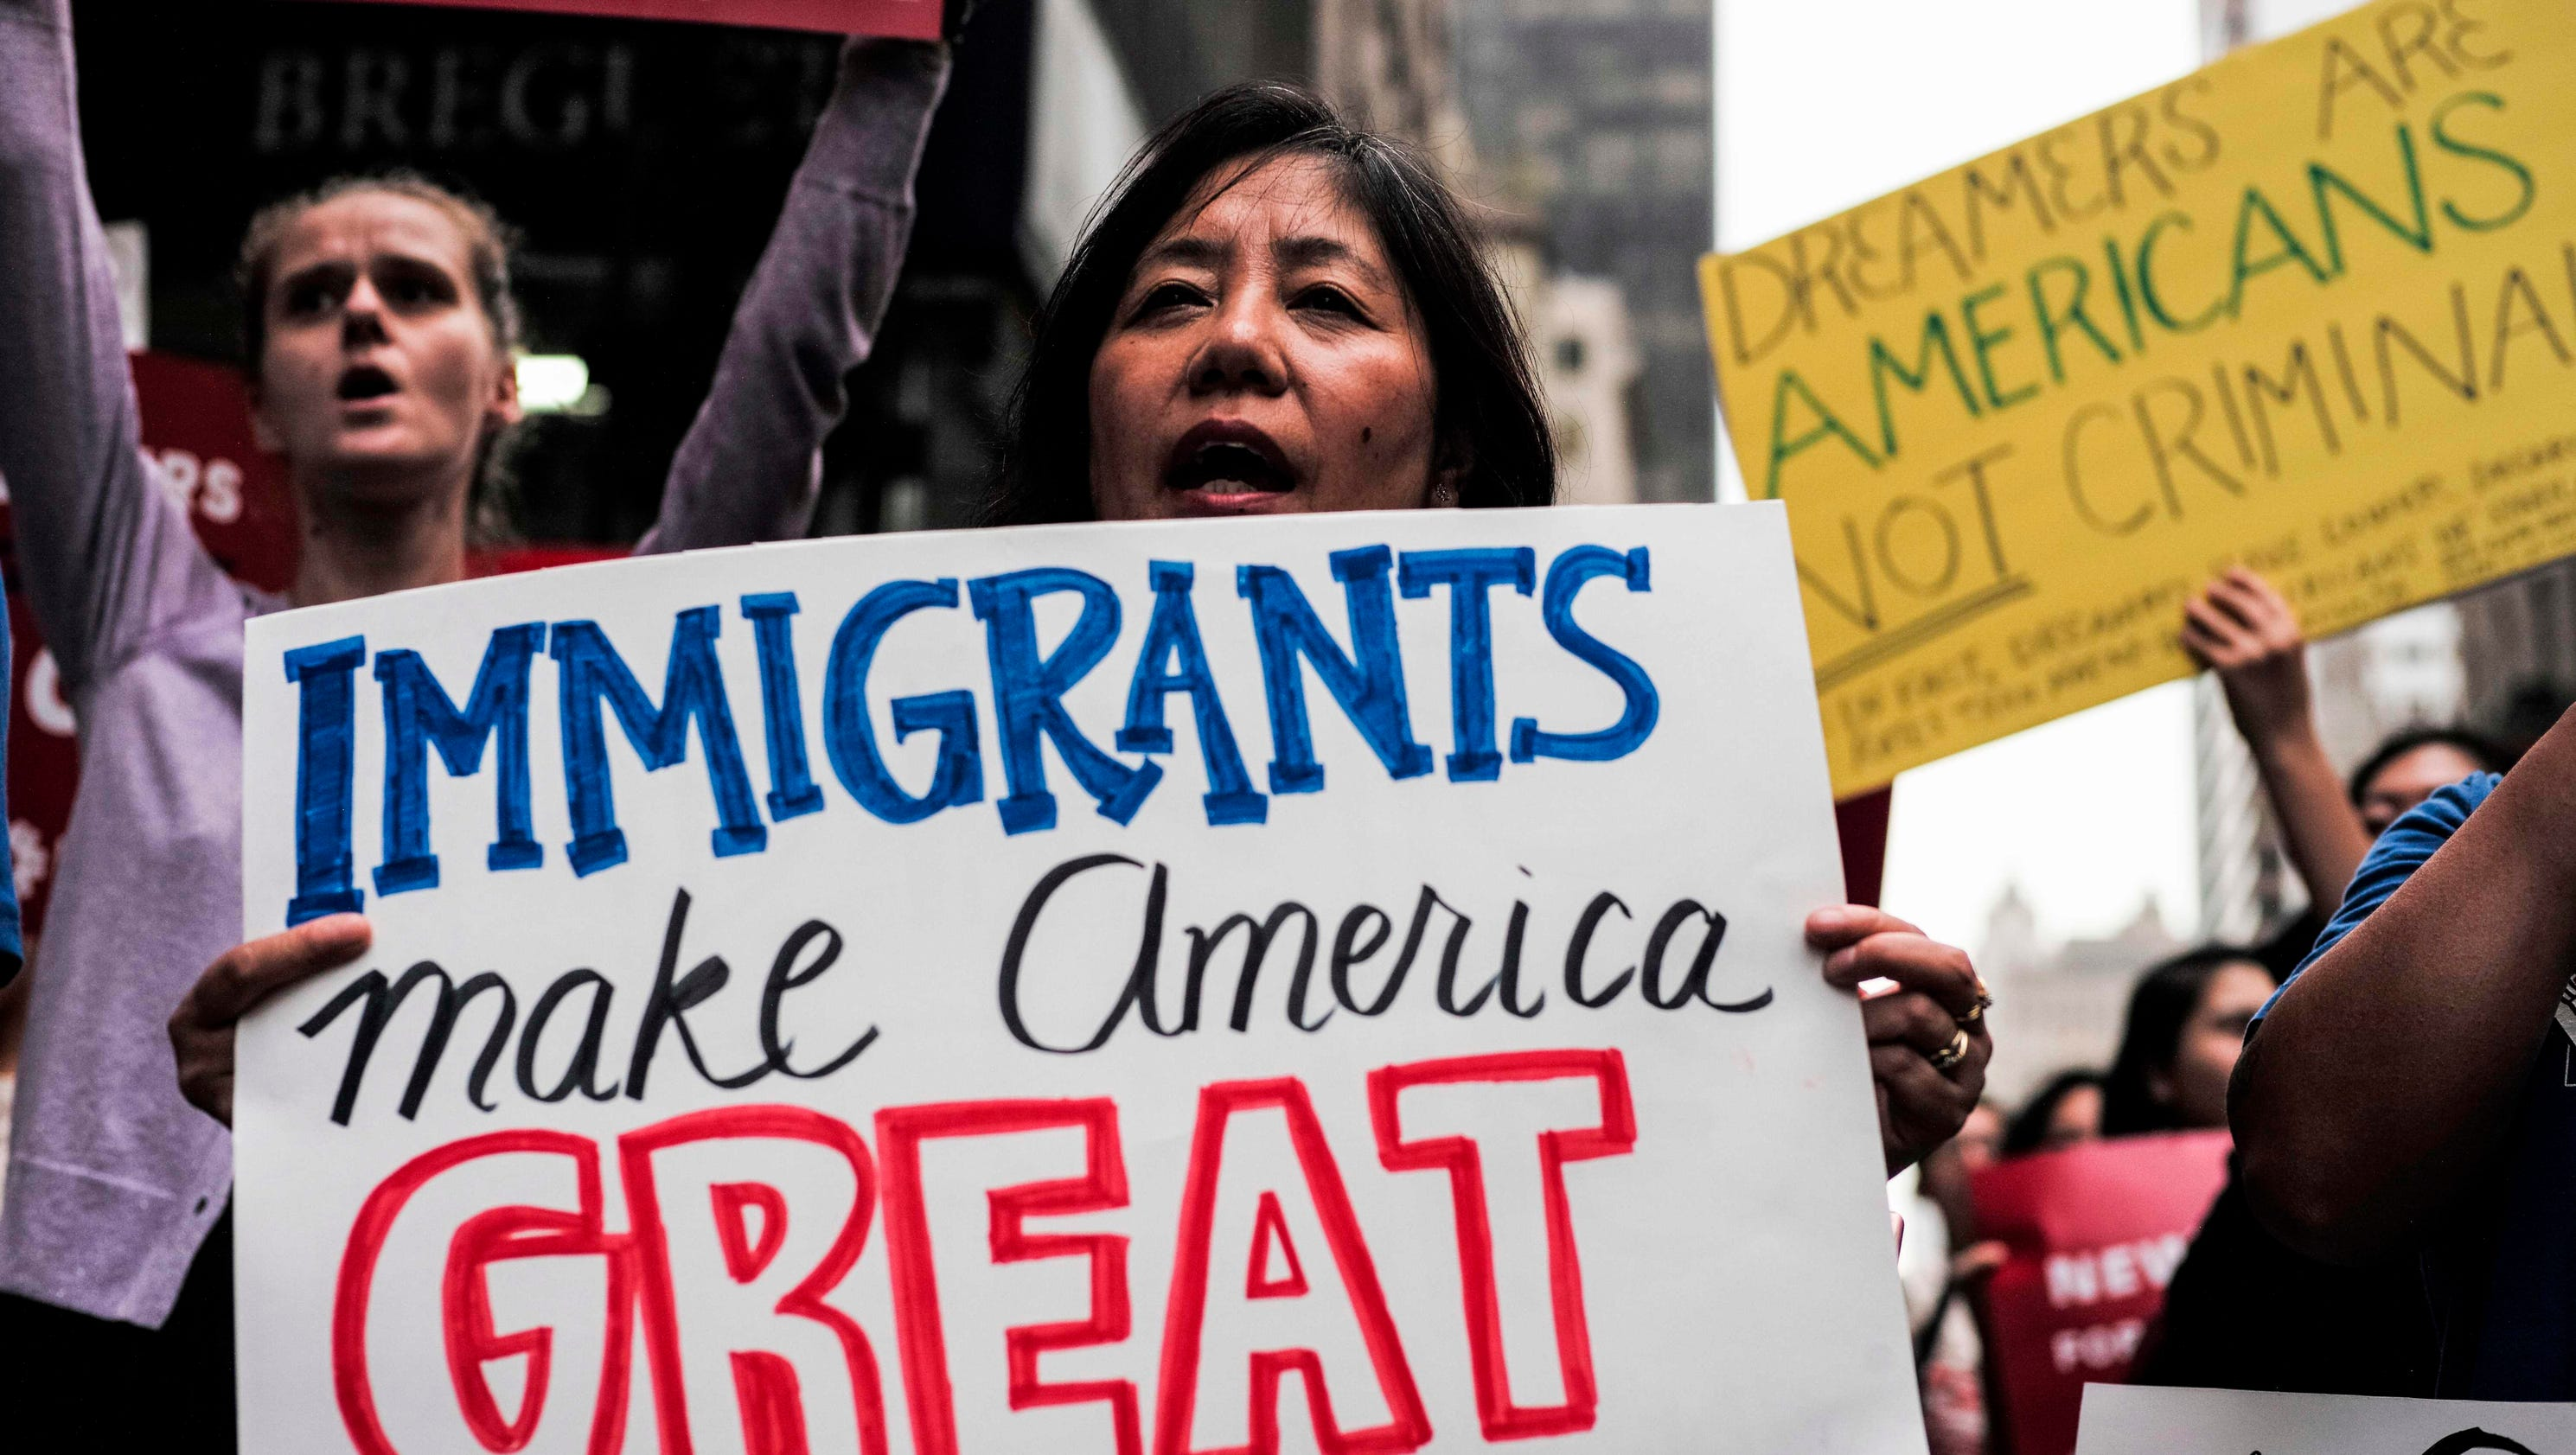 White House Immigration Overhaul Plan Draws Fire From All